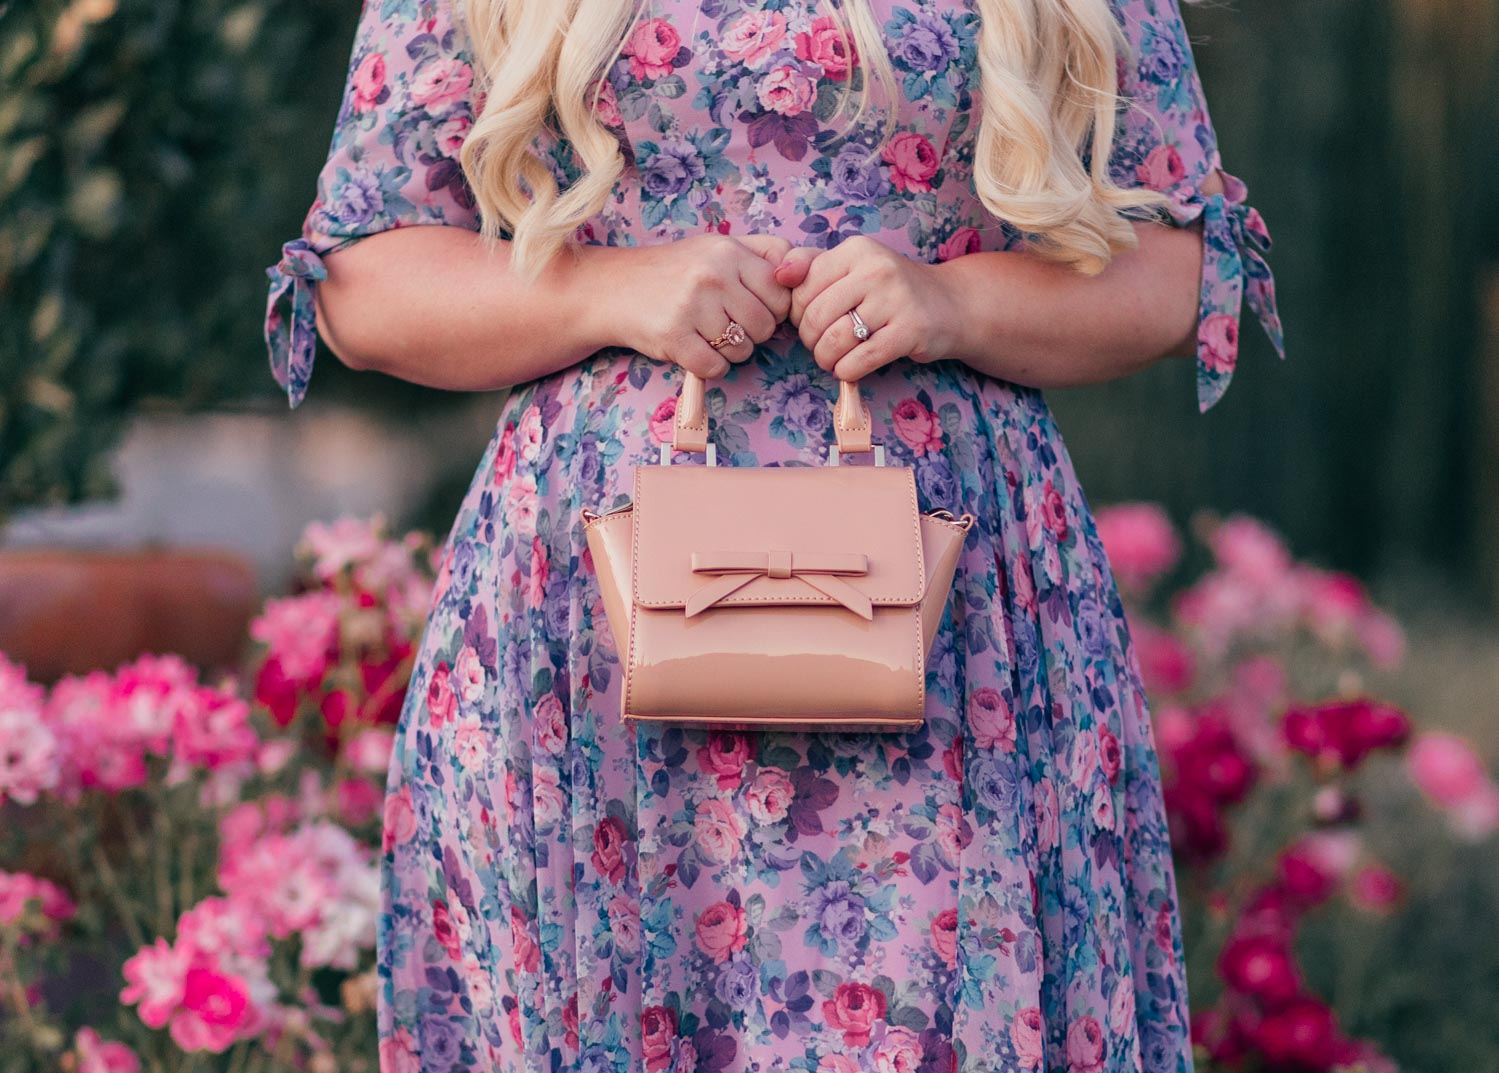 Fashion Blogger Elizabeth Hugen of Lizzie in Lace shares her girly handbag collection including this nude bow handbag